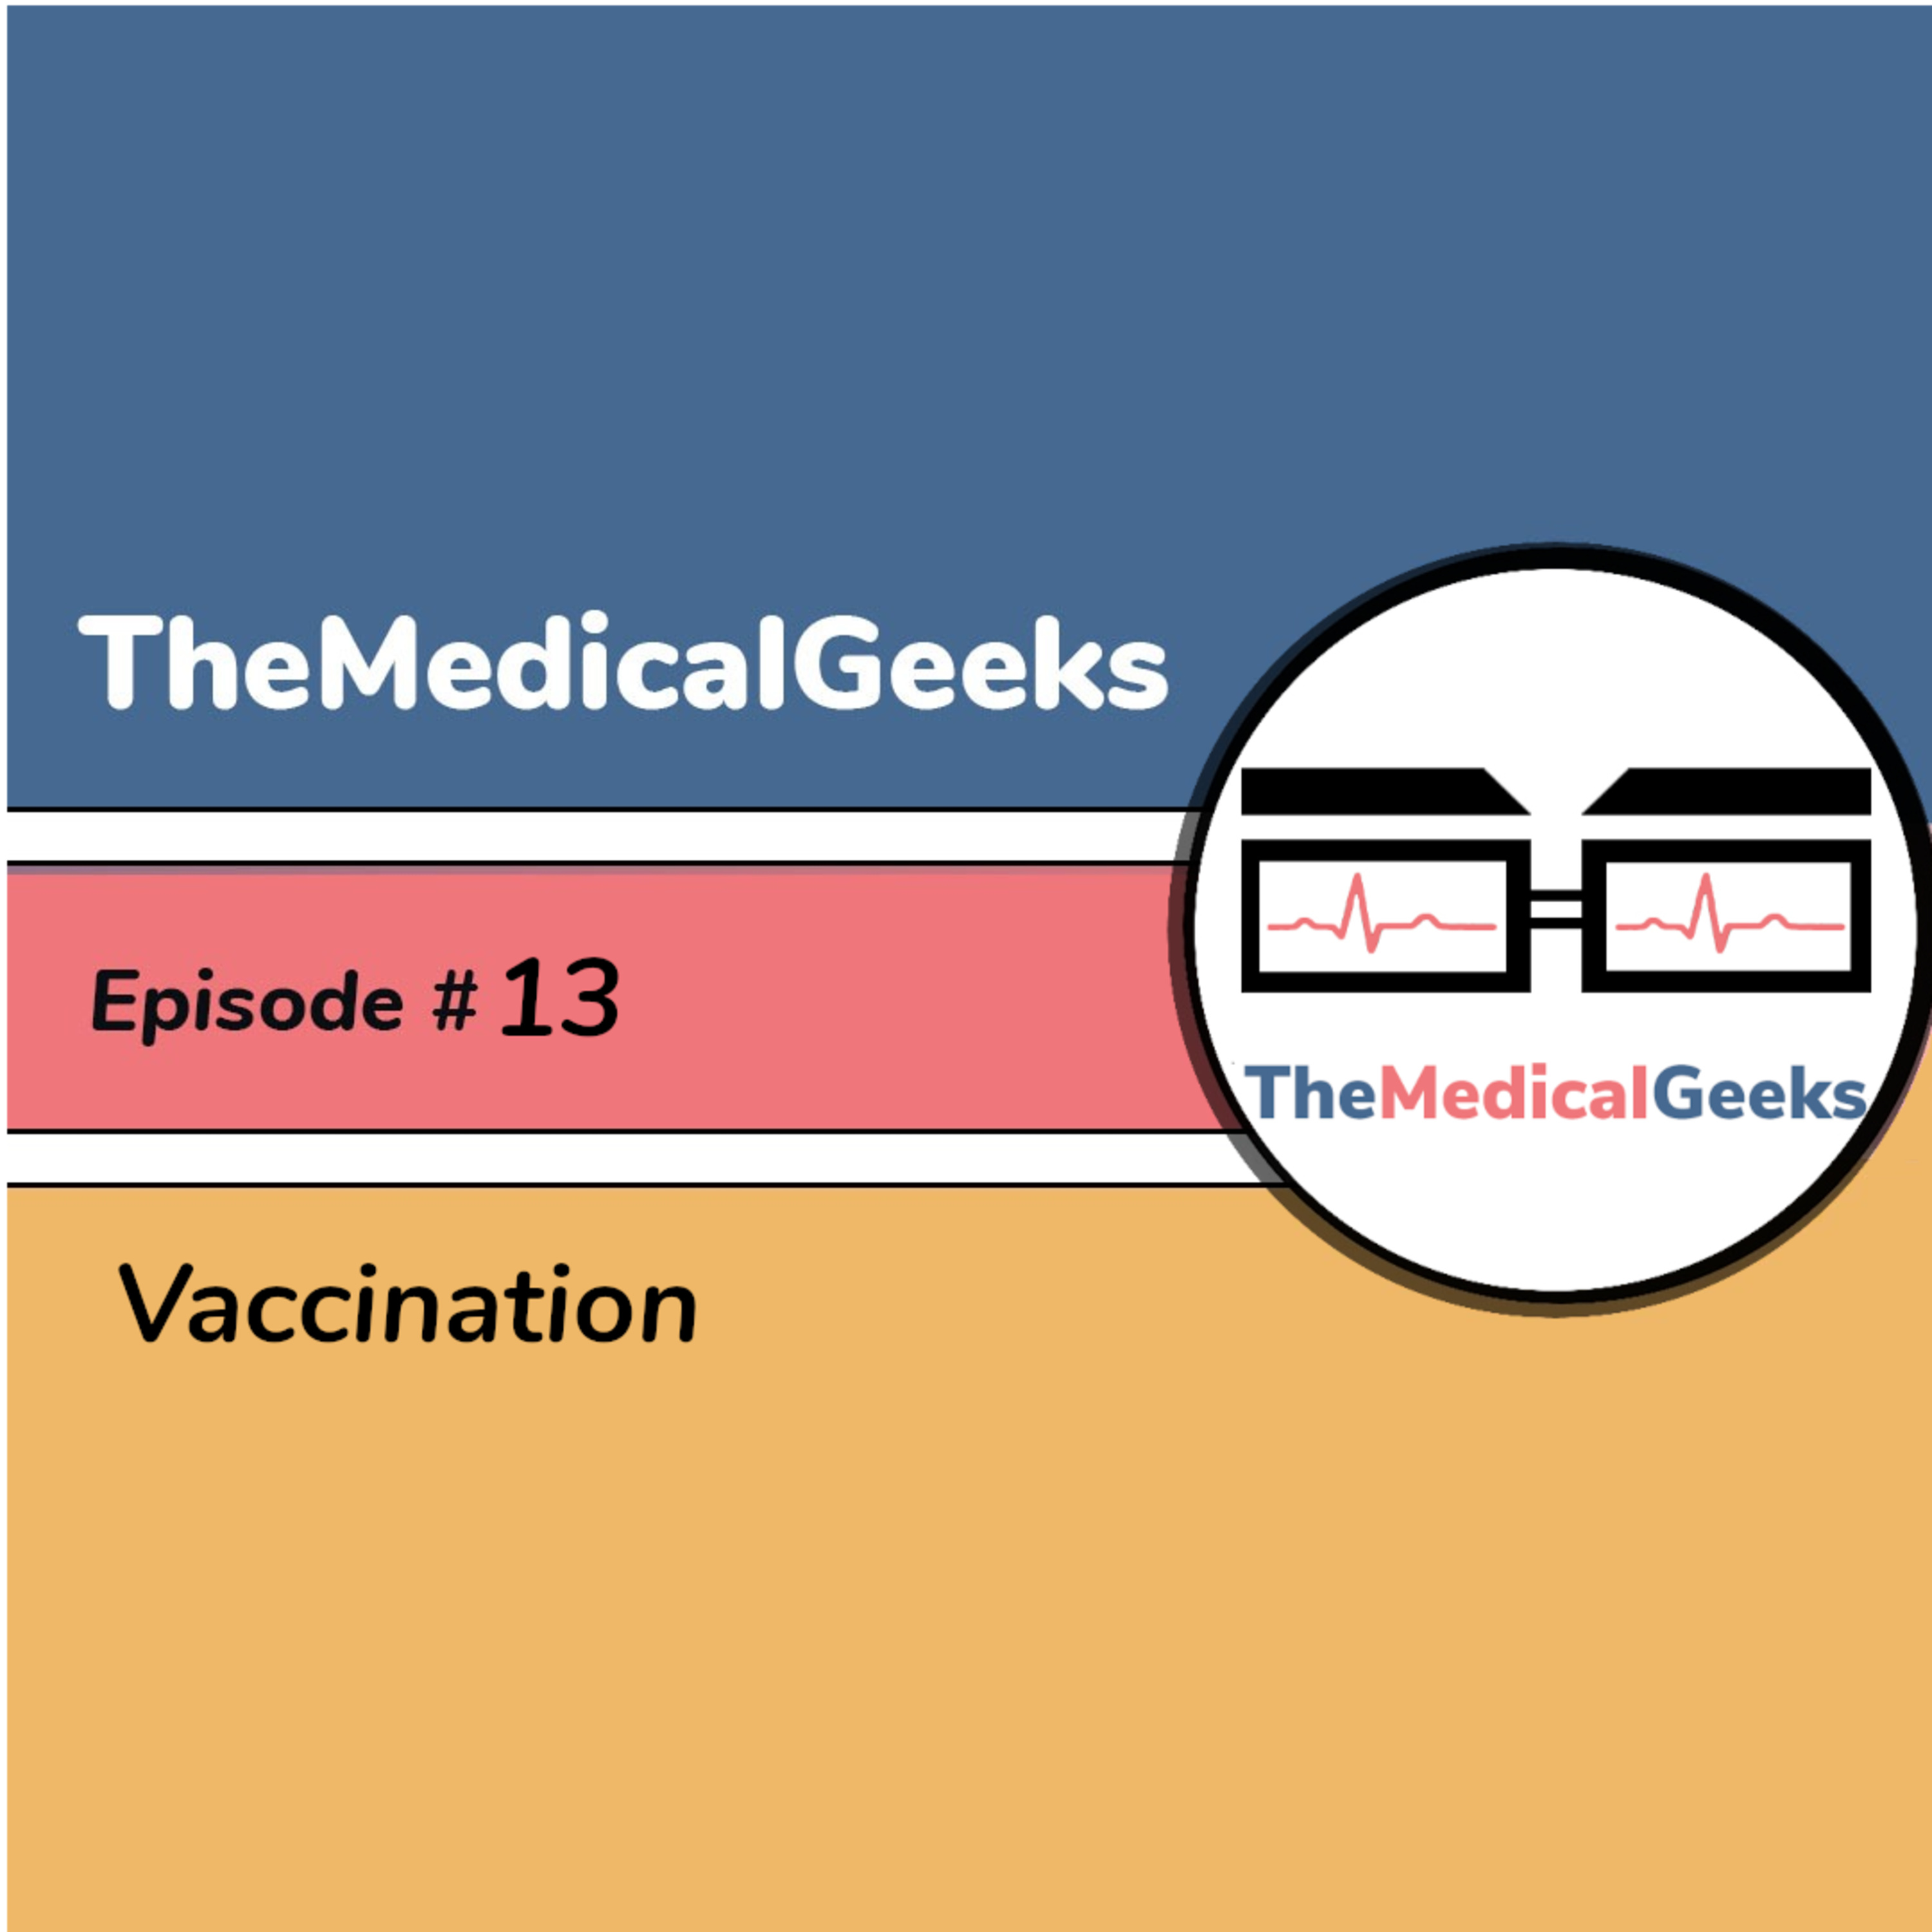 #13 Episode 13: Vaccination